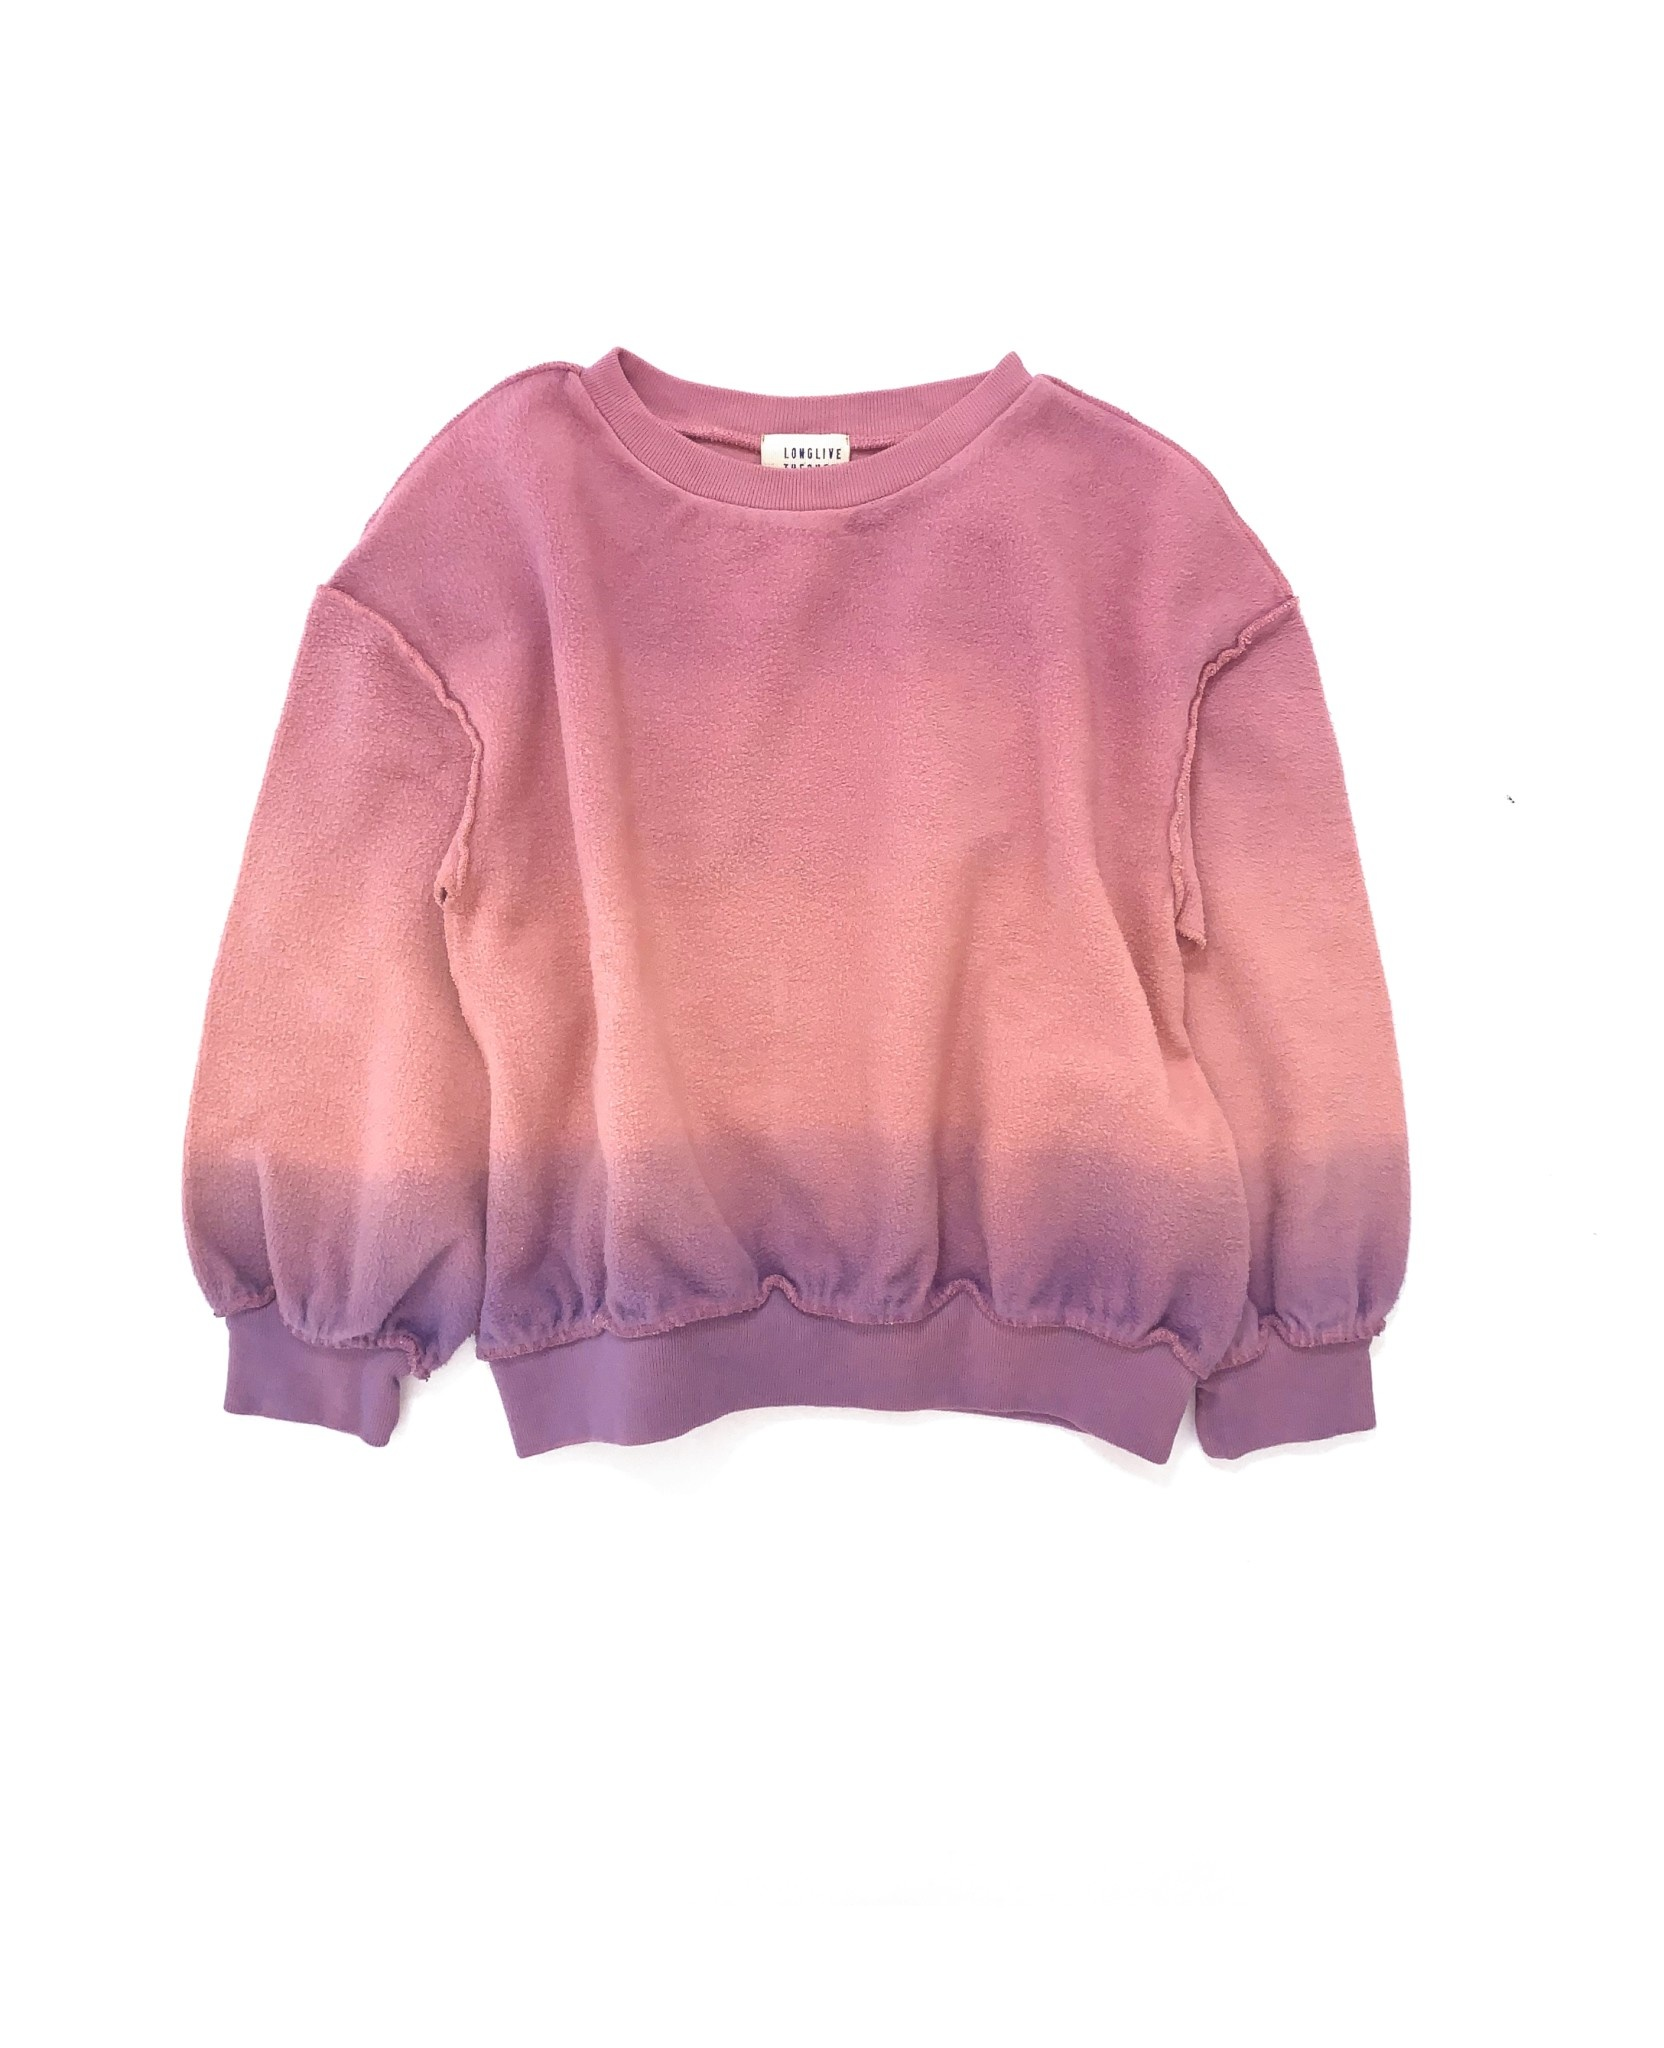 Sweater purple pink baby-1